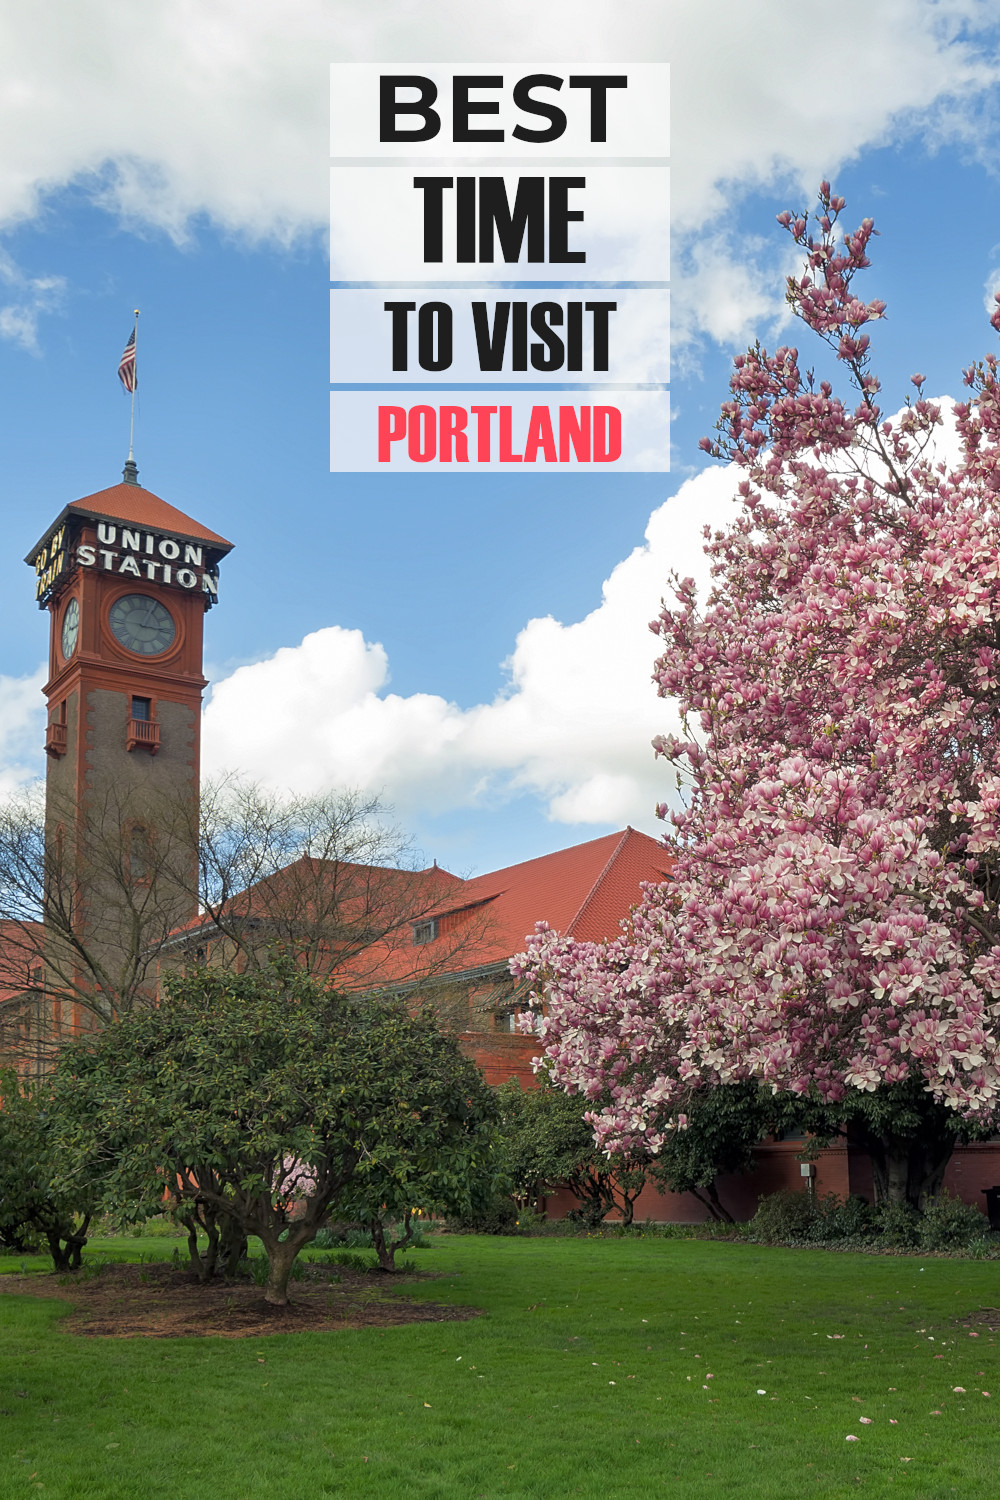 Best time to visit Portland - complete guide for when you should go for the weather, things to do and events